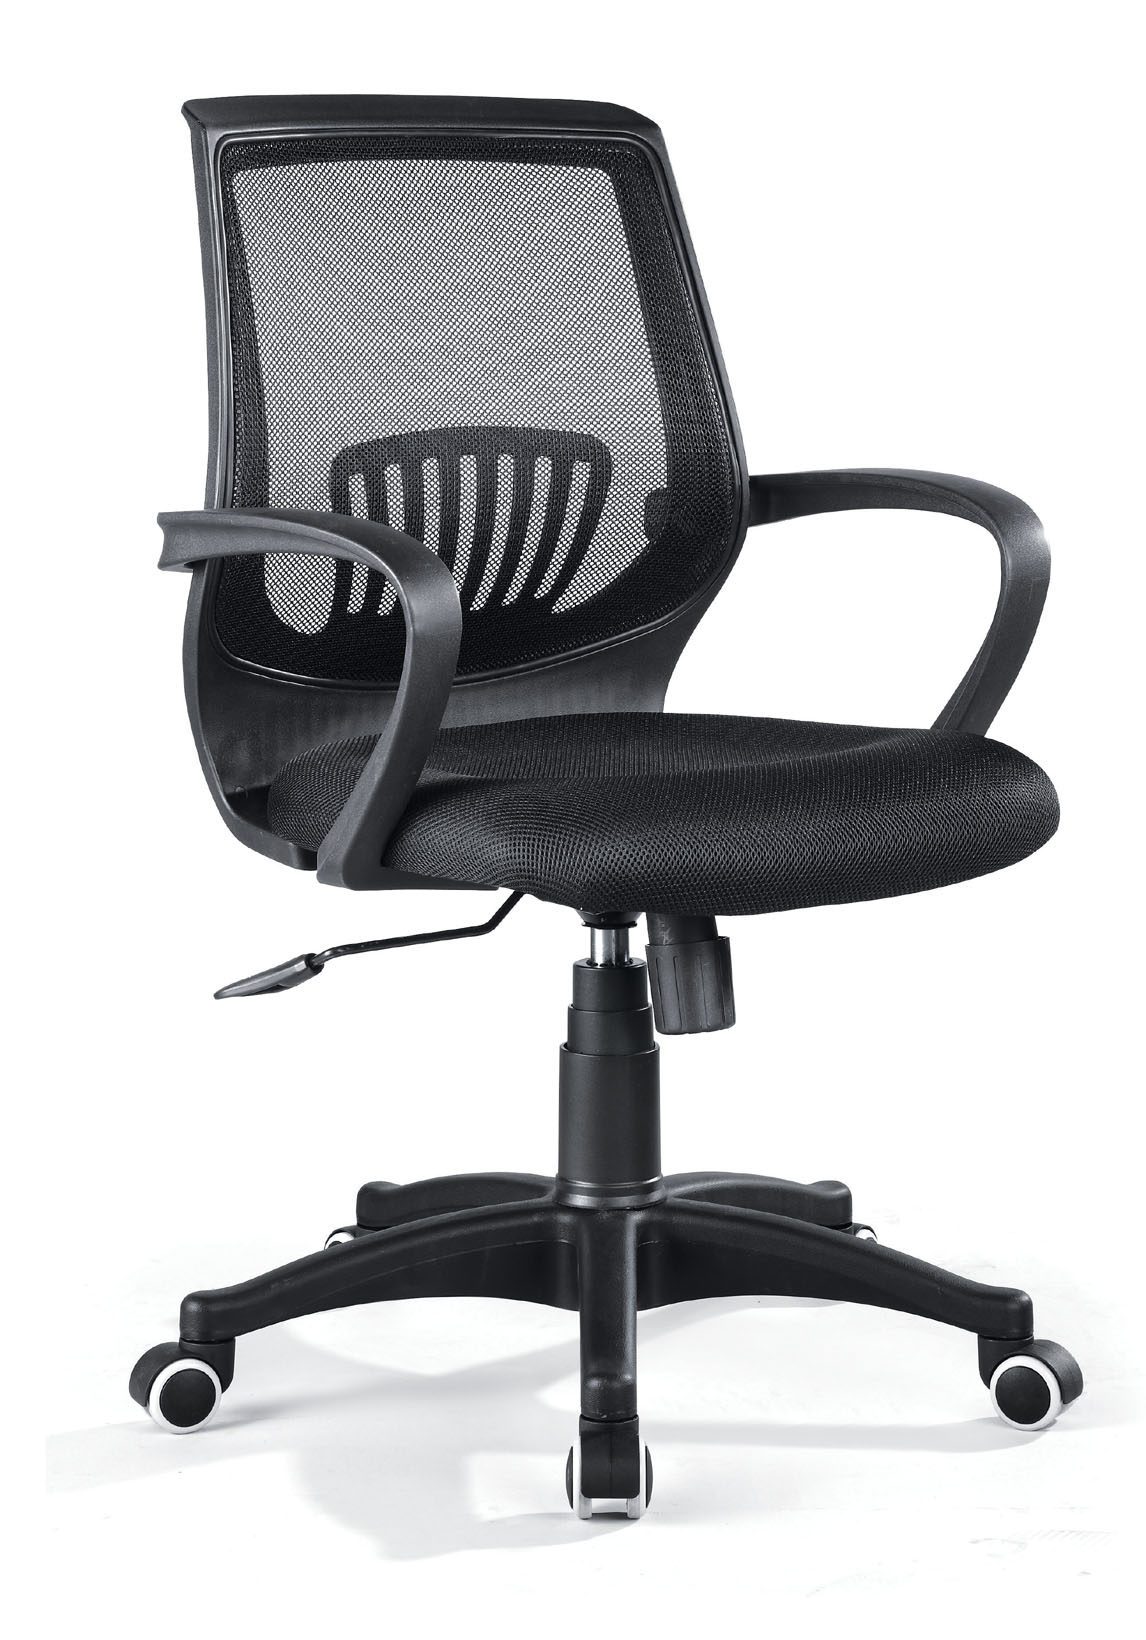 Swivel Office Chair with Black Armrest and Black mesh Backrest